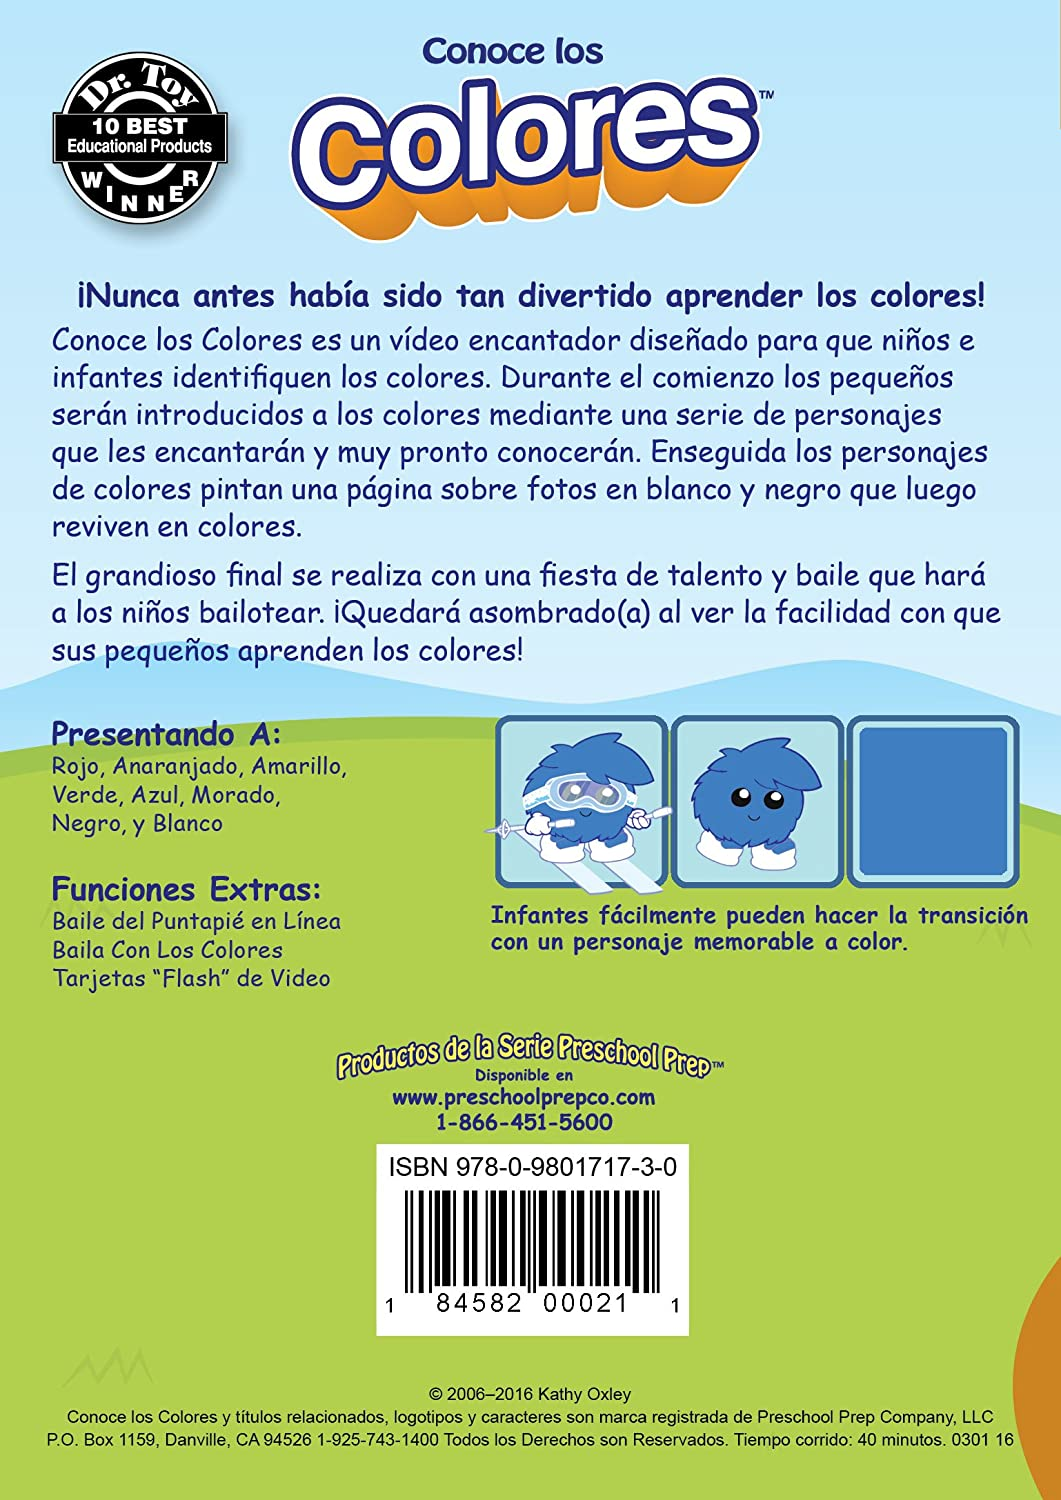 Amazon.com: Conoce los Colores - DVD: Animation, Kathy Oxley: Movies ...